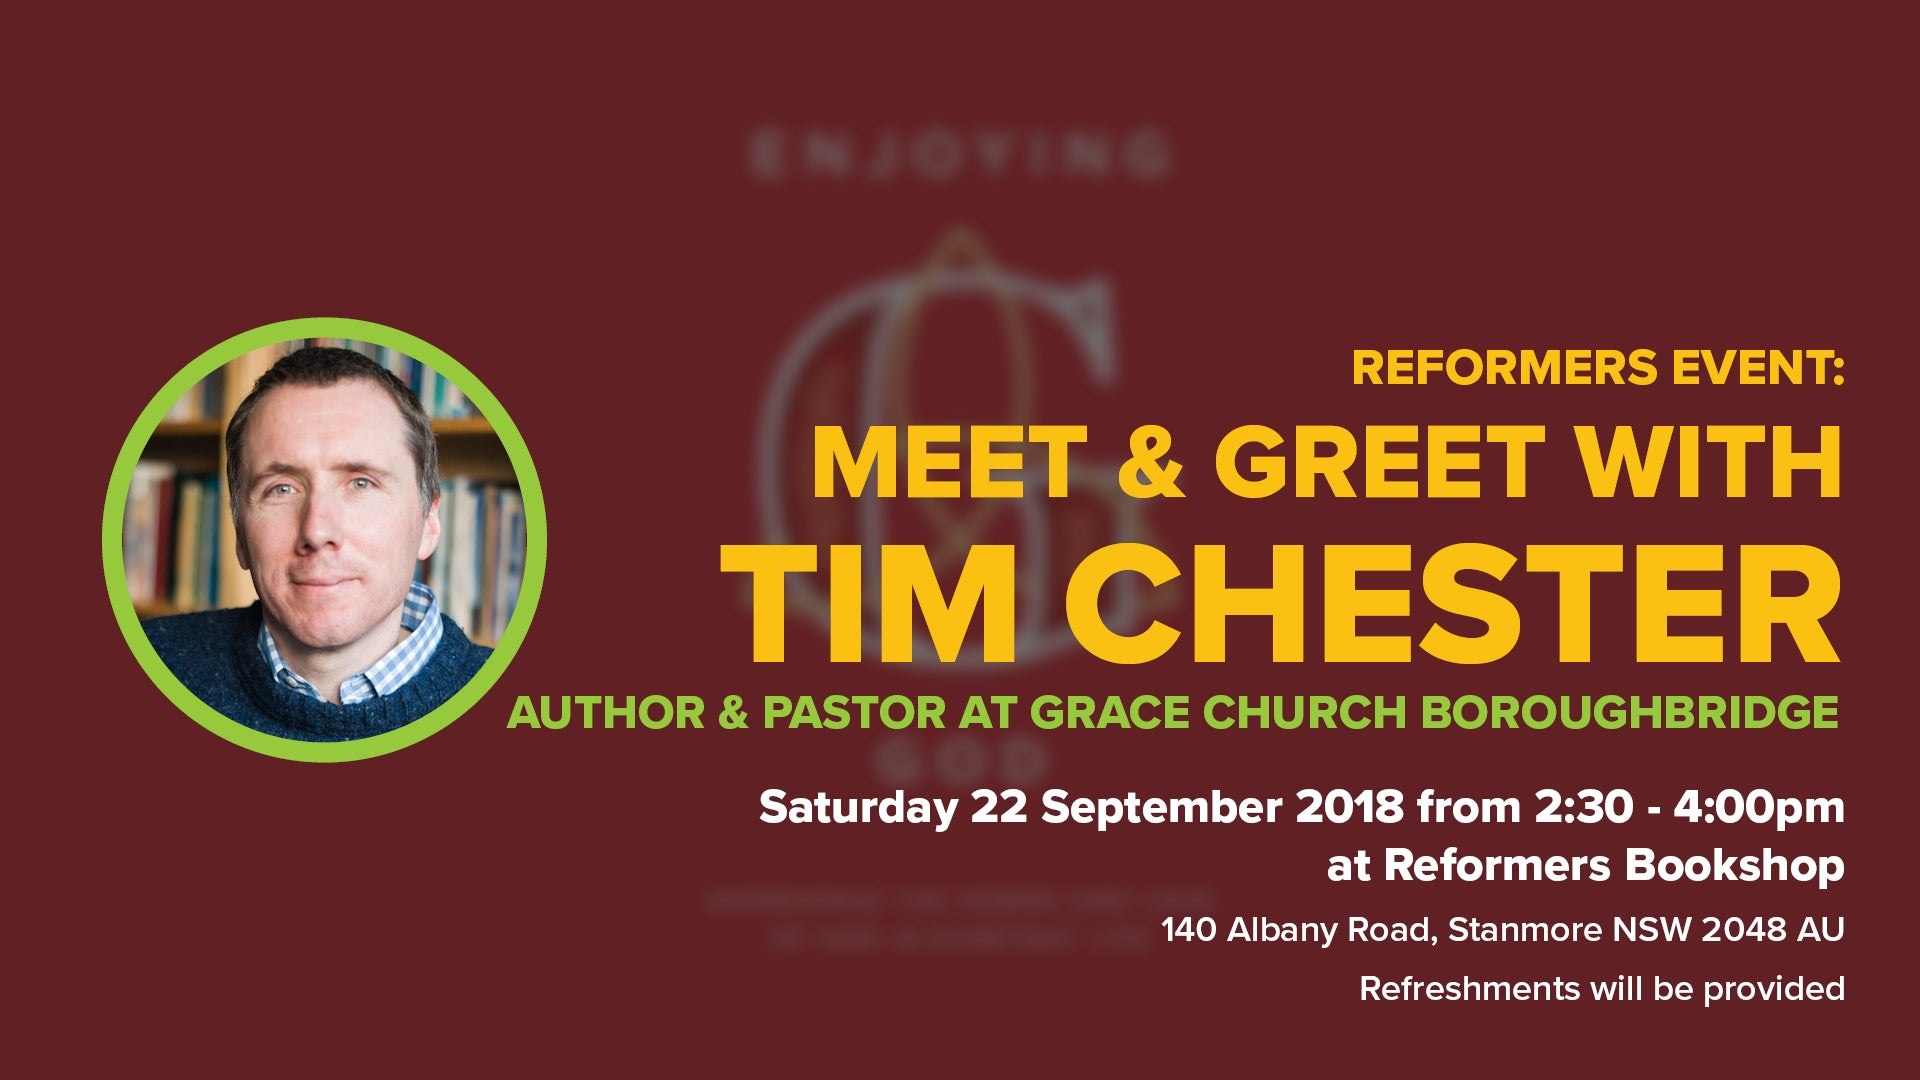 Reformers Event: Meet & Greet with Tim Chester (Author & Pastor at Grace Church Boroughbridge) -- Saturday 22 September 2018 from 2:30pm - 4:00pm at Reformers Bookshop, 140 Albany Road, Stanmore NSW 2048 AU -- Refreshments will be provided.